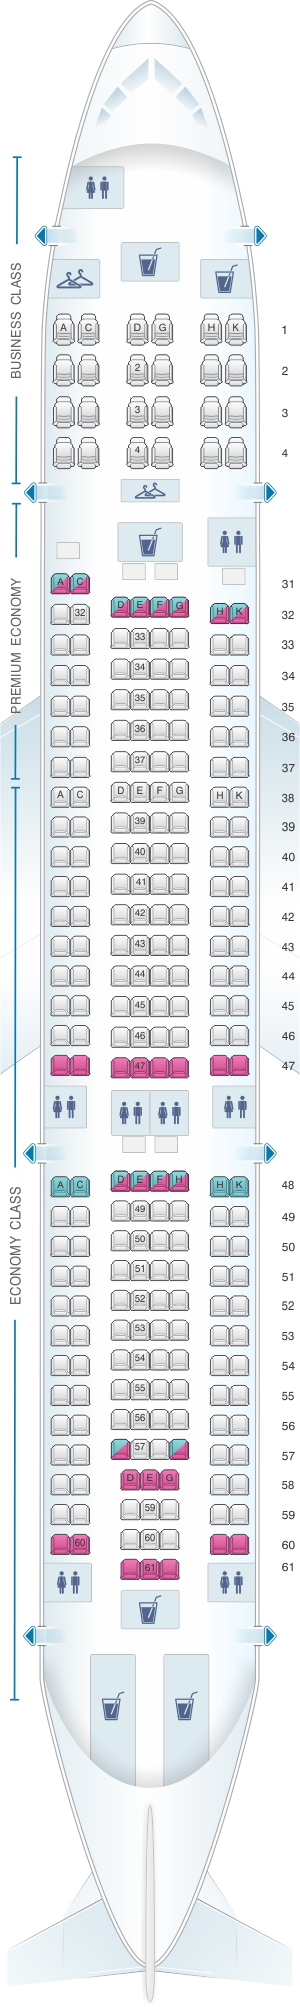 Seat map for China Southern Airlines Airbus A330-200 Layout A